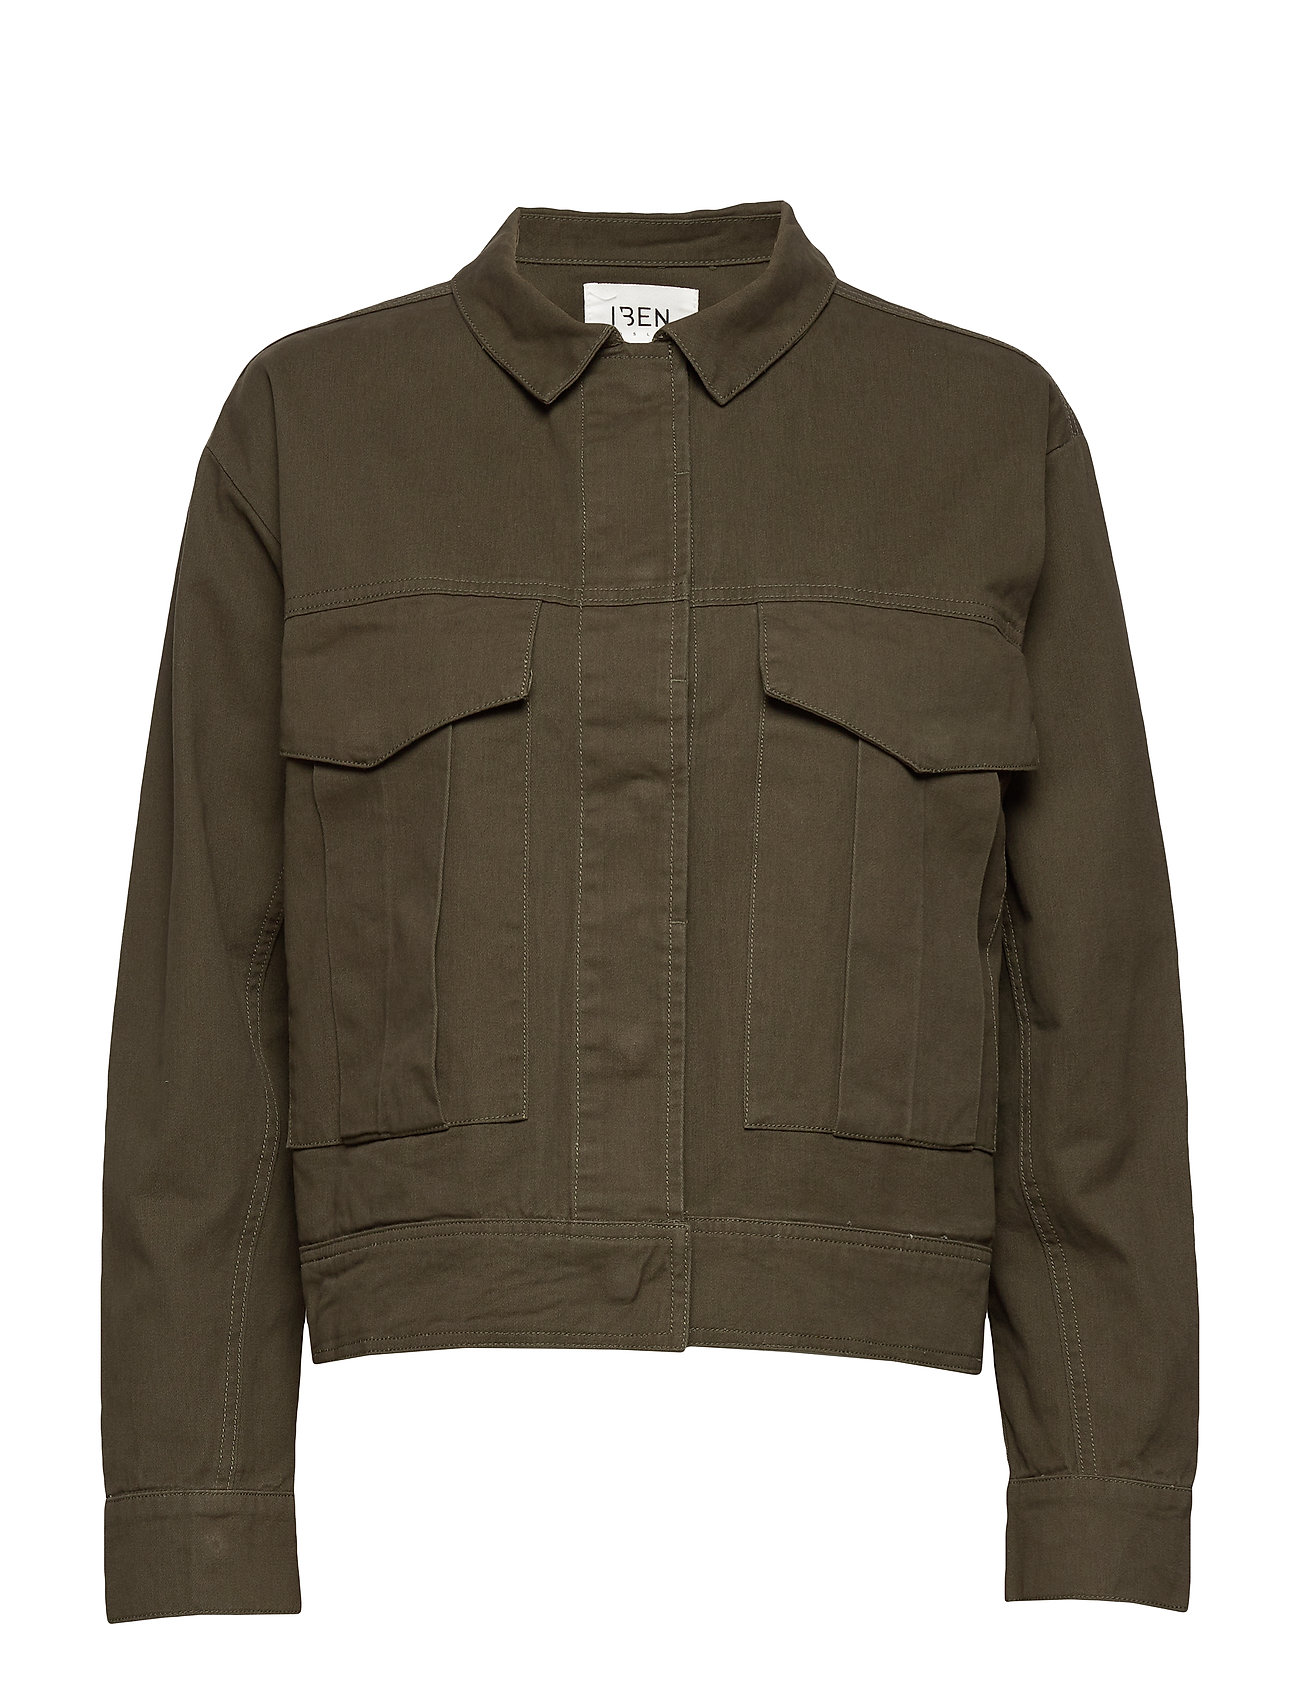 Image of Camilo Jacket Awn Outerwear Jackets Utility Jackets Grøn IBEN (3406268741)